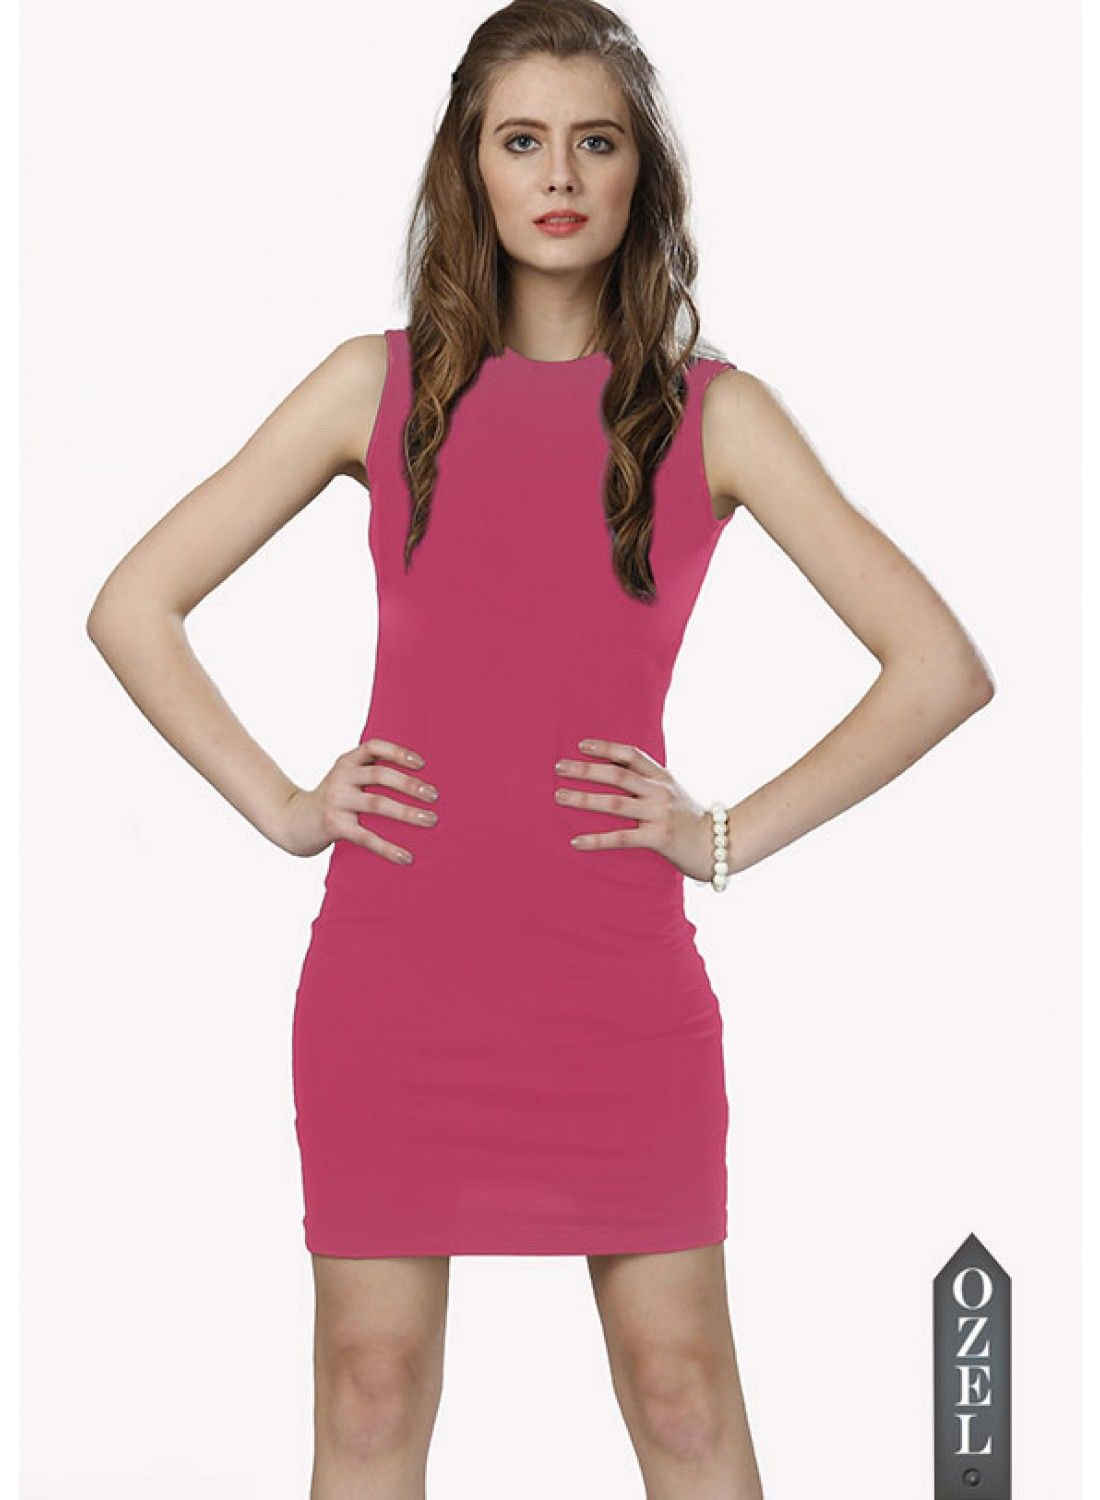 Pink Bodycon Dress by EAVAN | Valentines Day Special - Love for Red ...